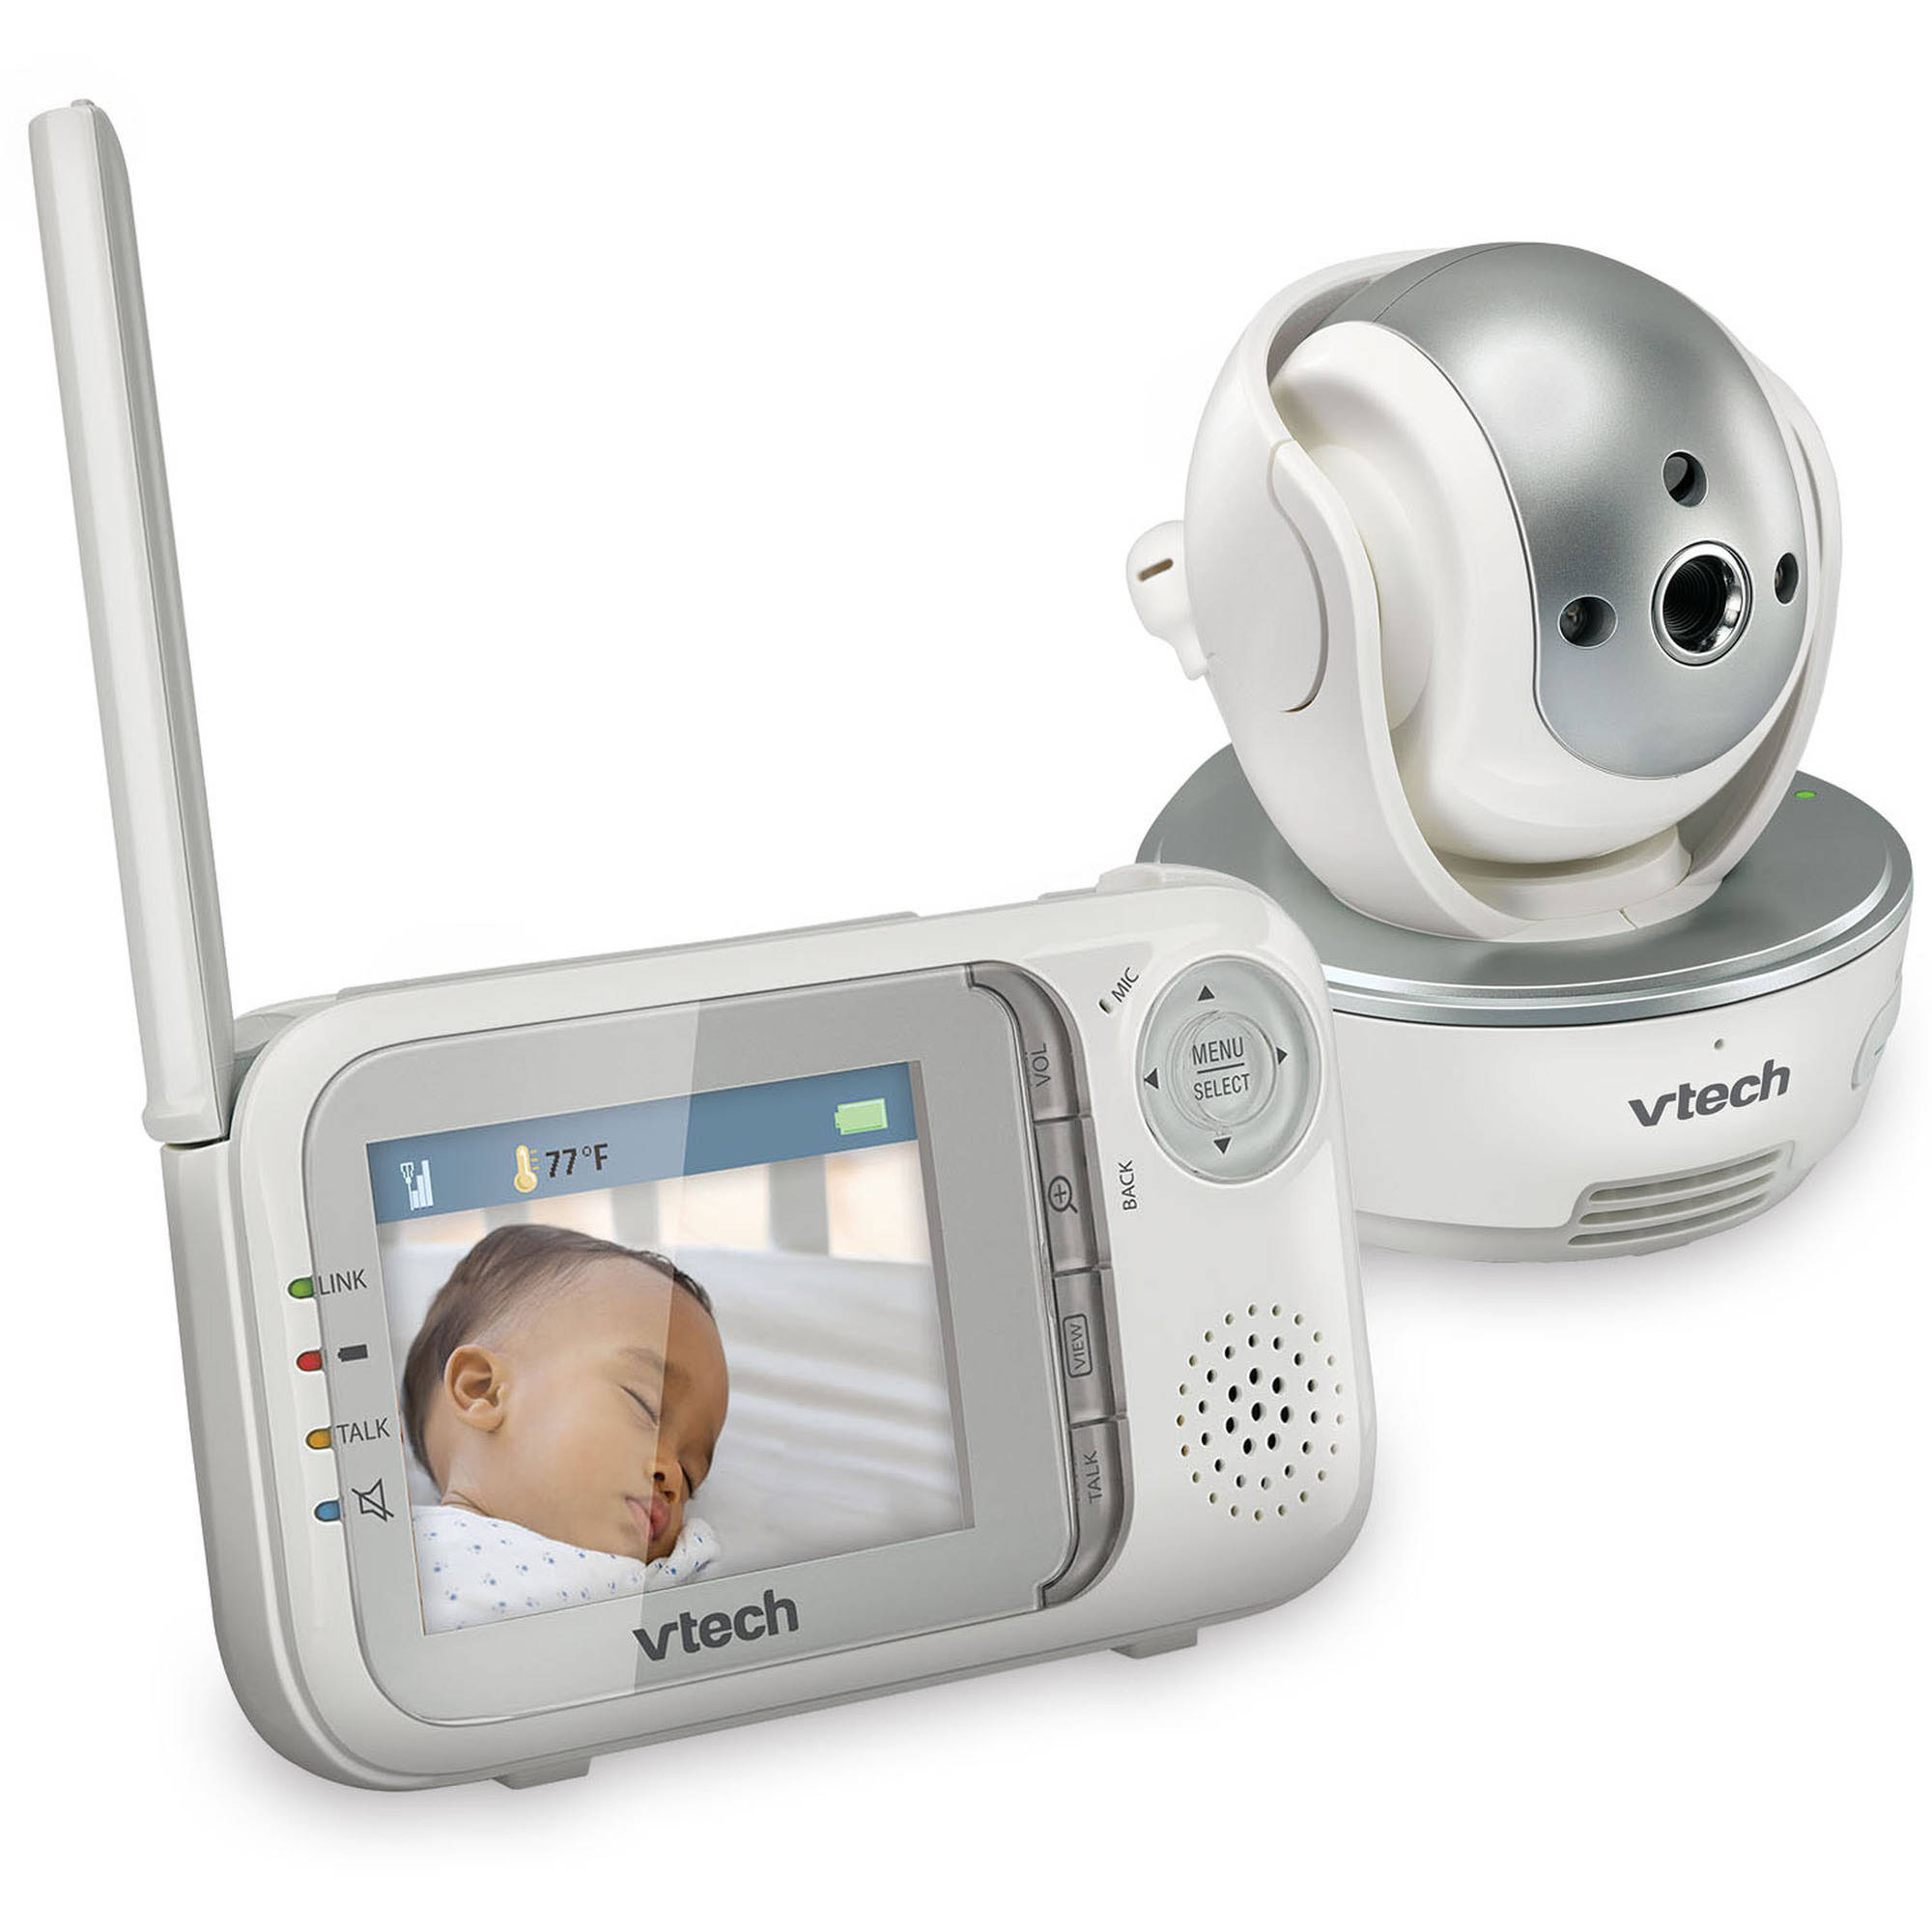 VTech VM333 Safe & Sound Expandable Digital Video Baby Monitor with Pan and Tilt Camera and Automatic Night Vision, 1 Parent Unit, White